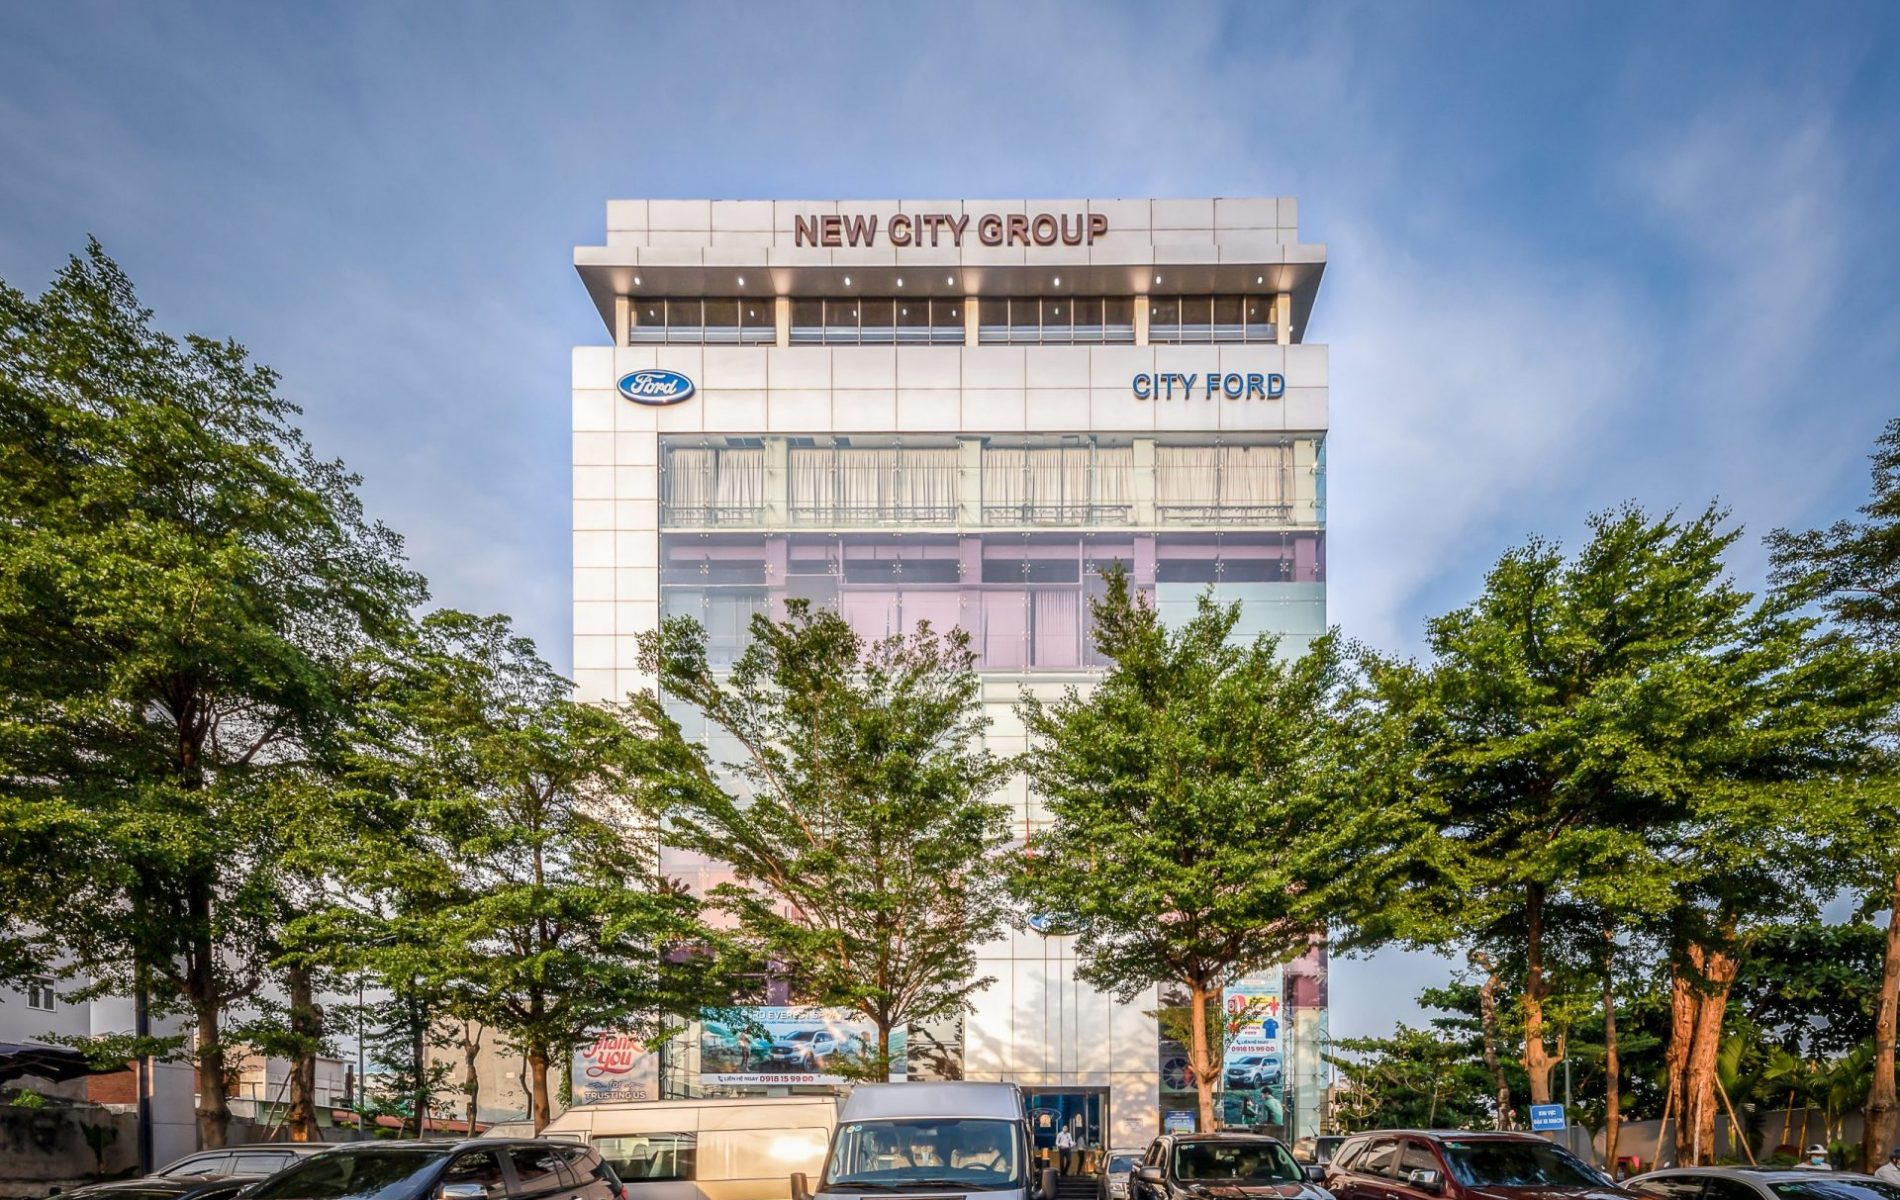 new-city-group-building